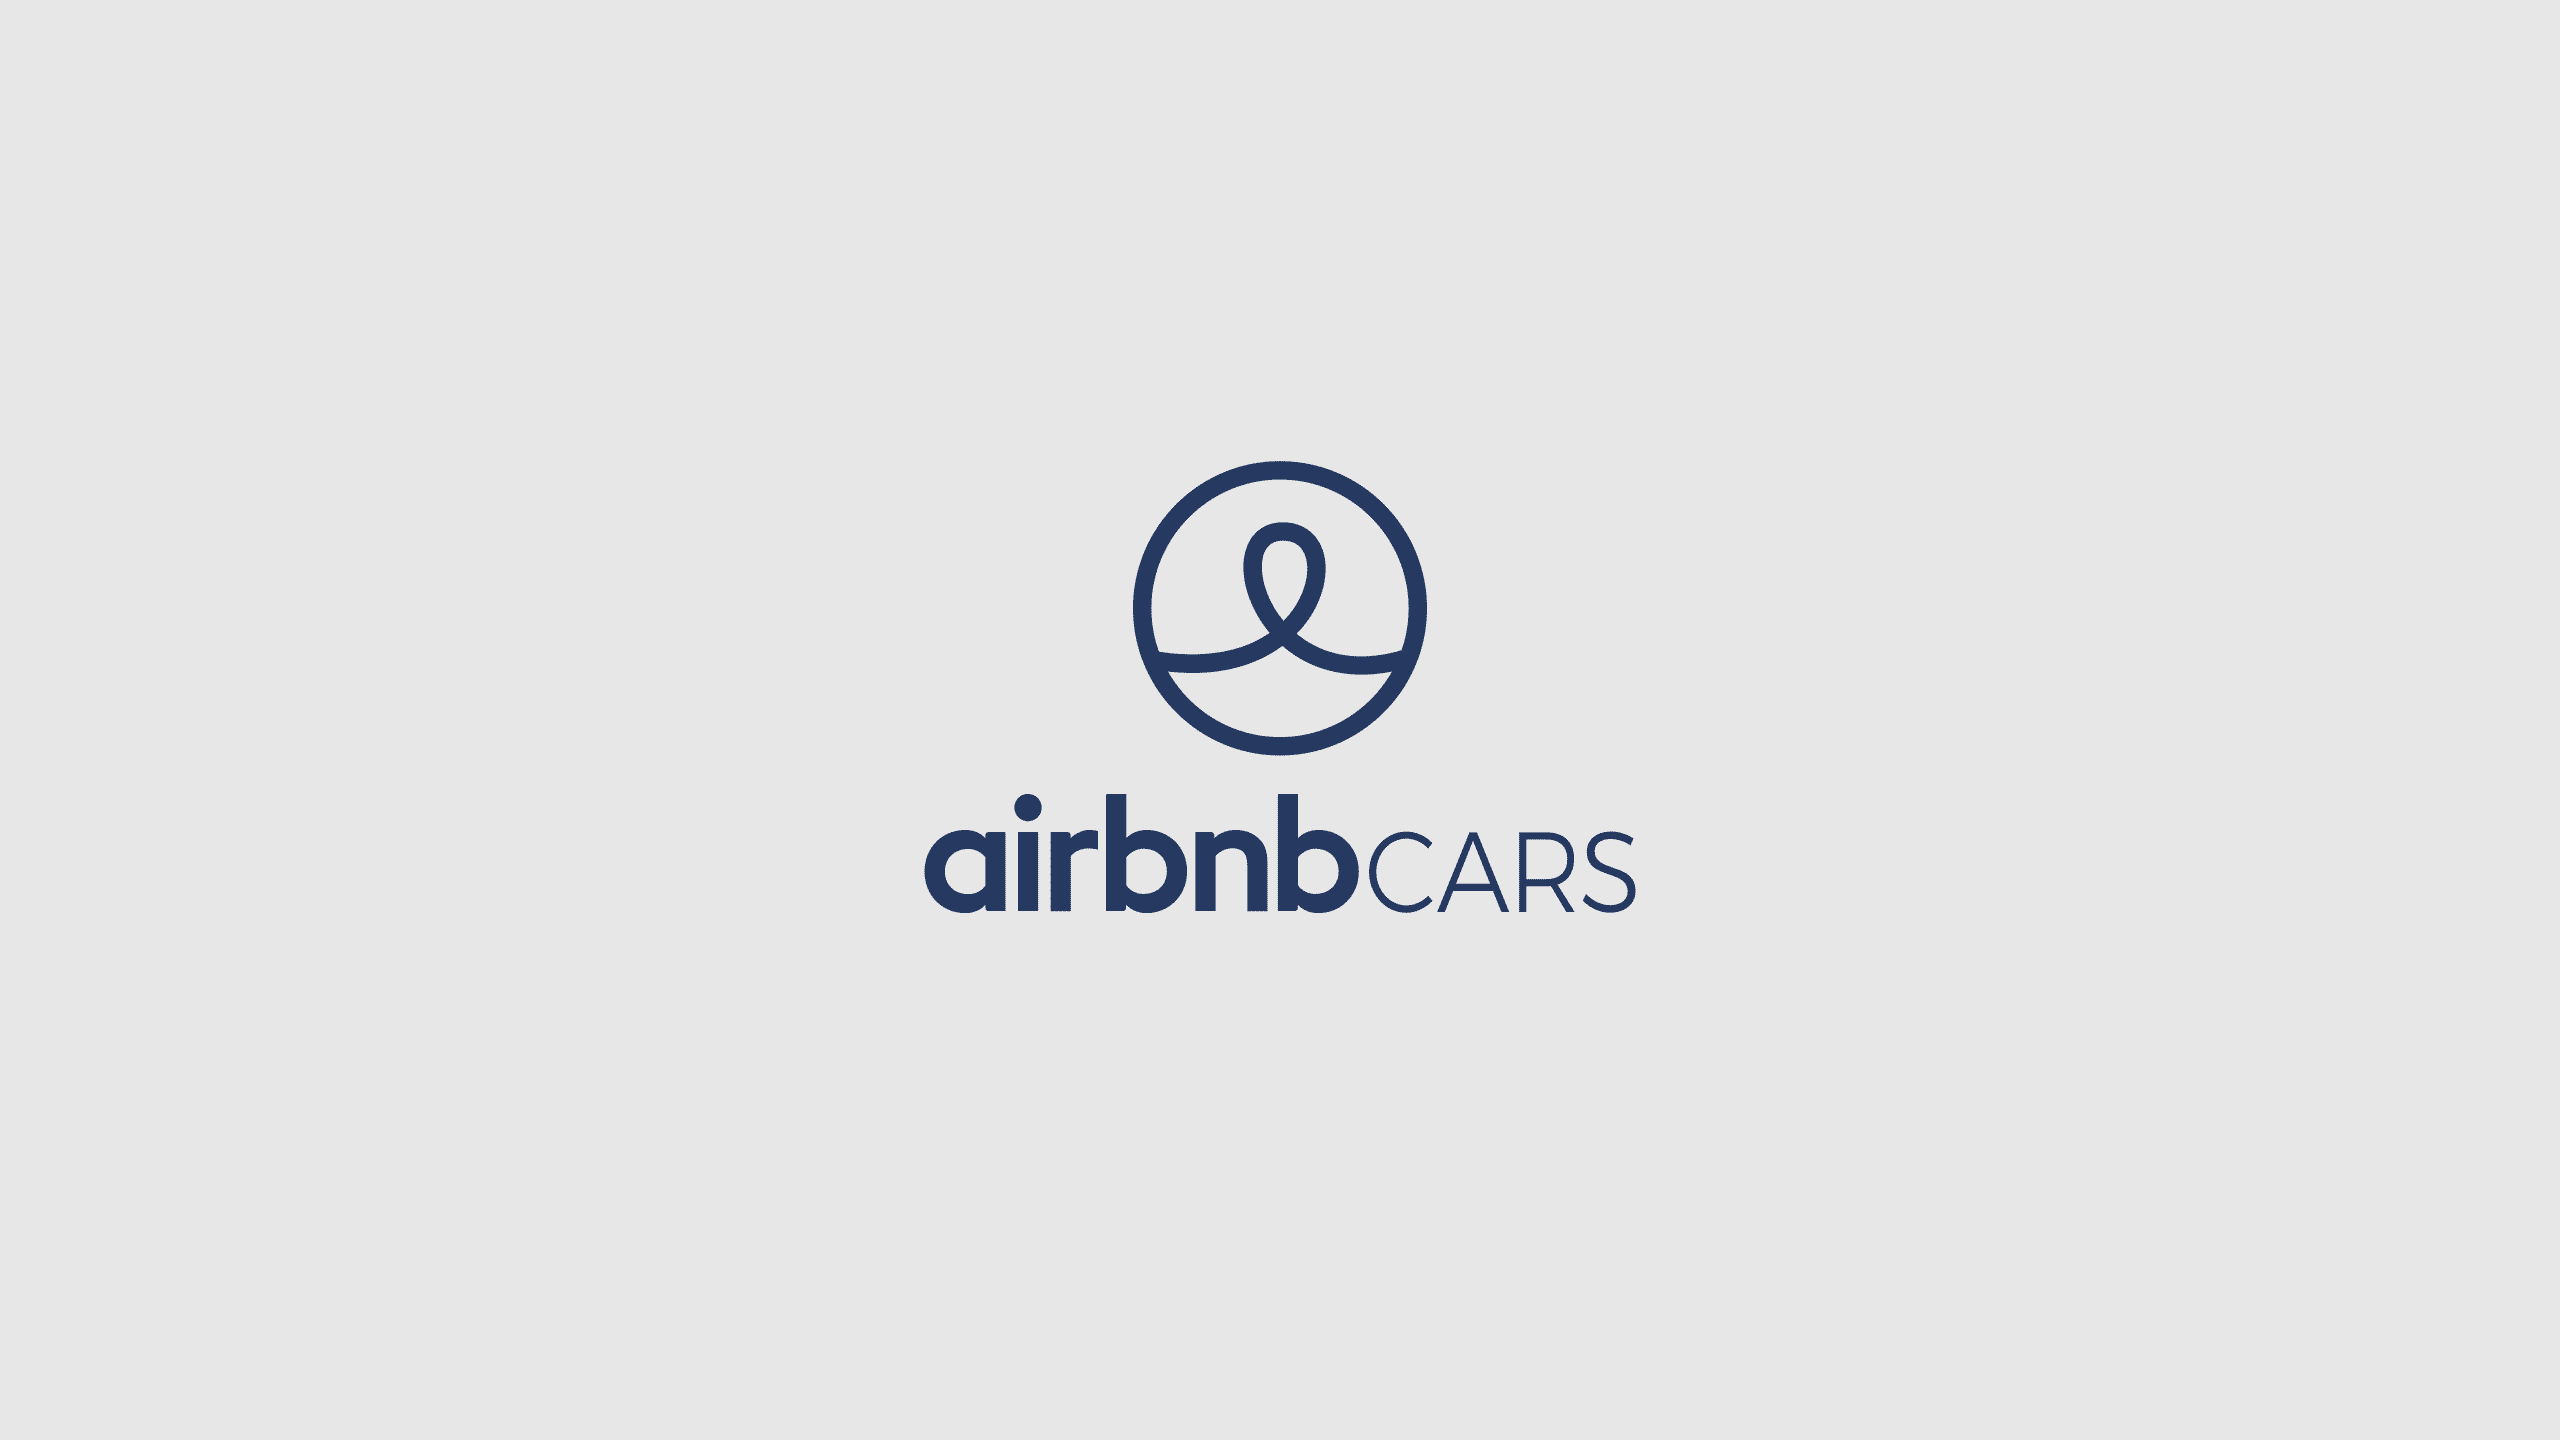 Kevin-Kwok-Design-Airbnb-Cars-2